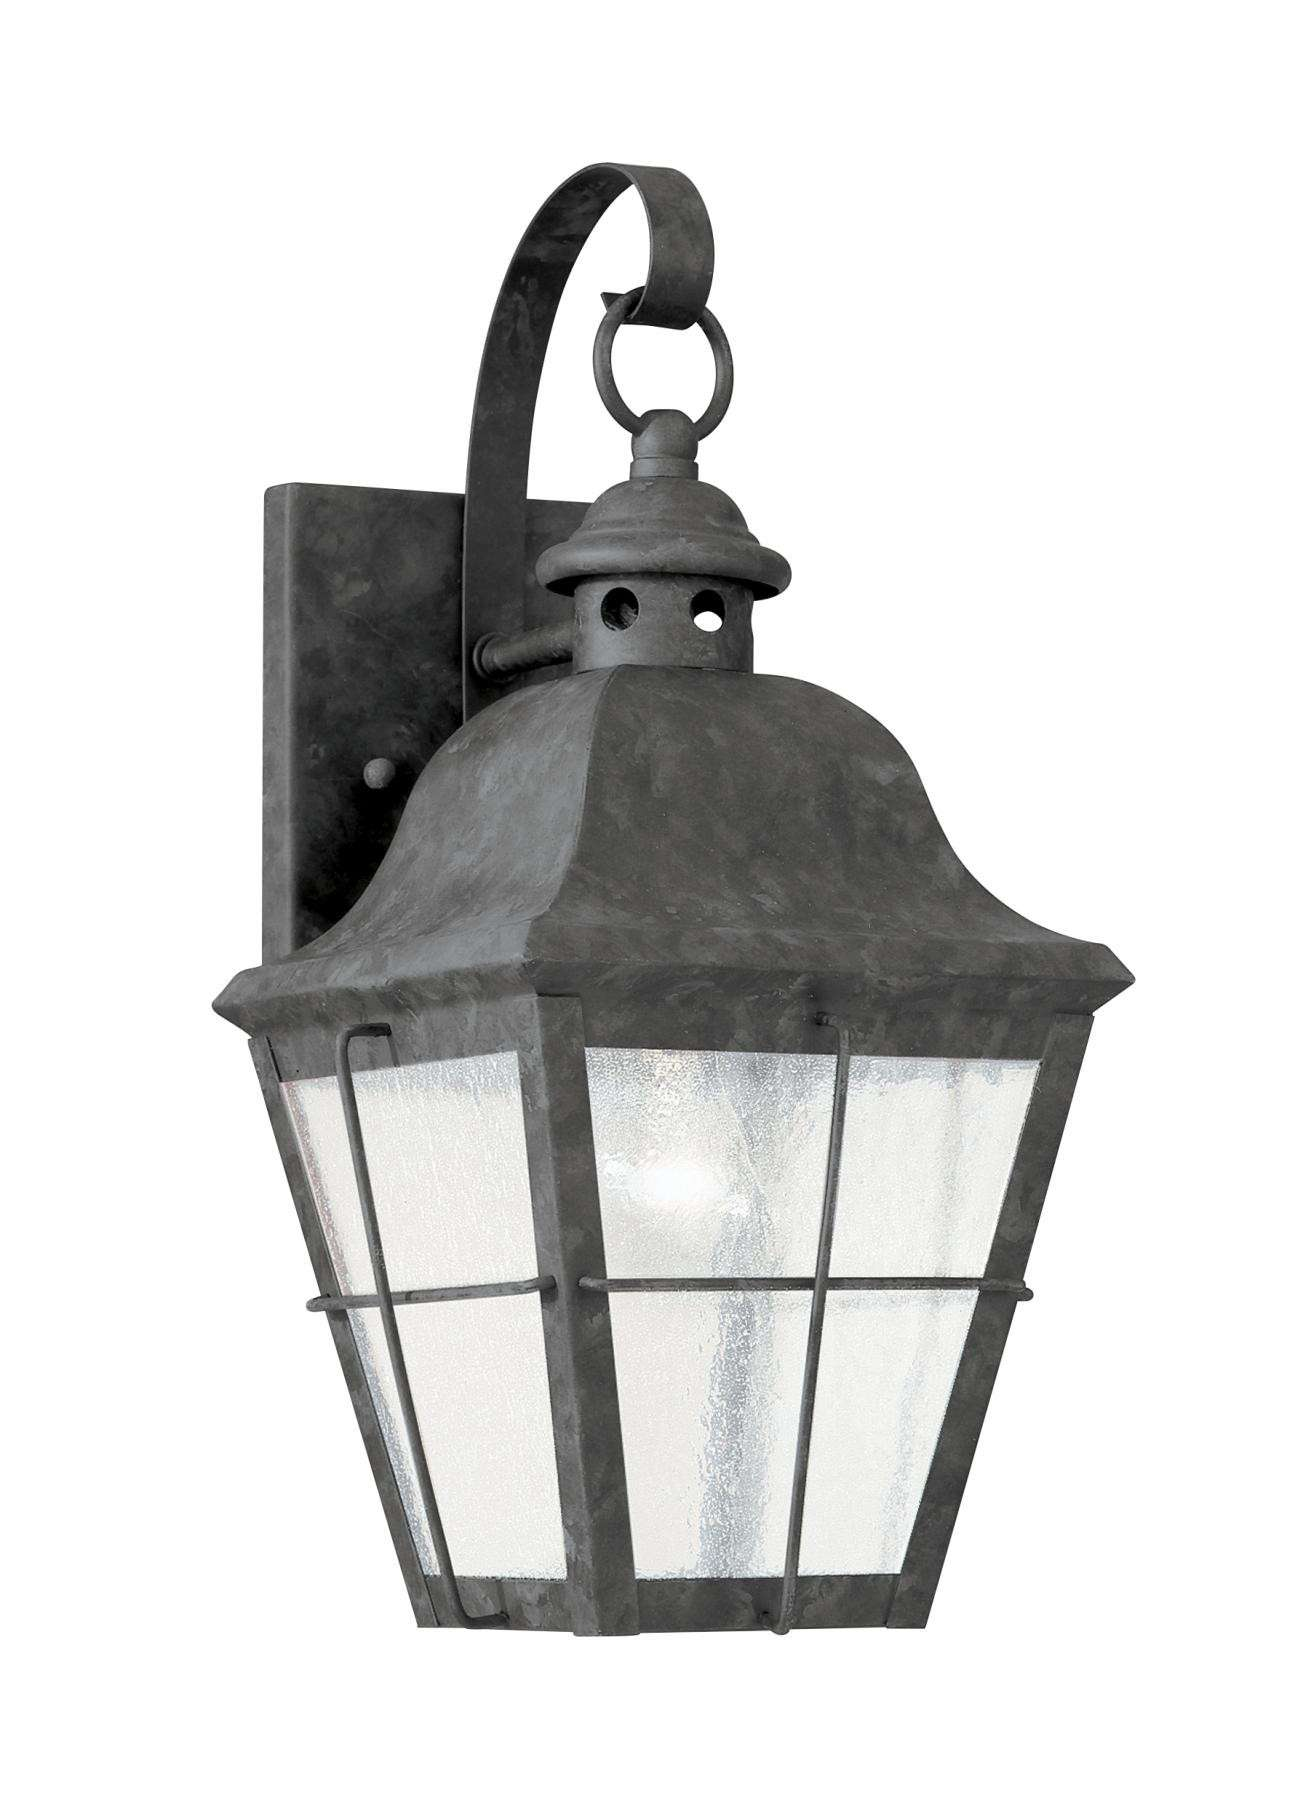 Seagull Lighting 8462-46 Single-Light Chatham Outdoor Wall Lantern in Oxidized Bronze finish